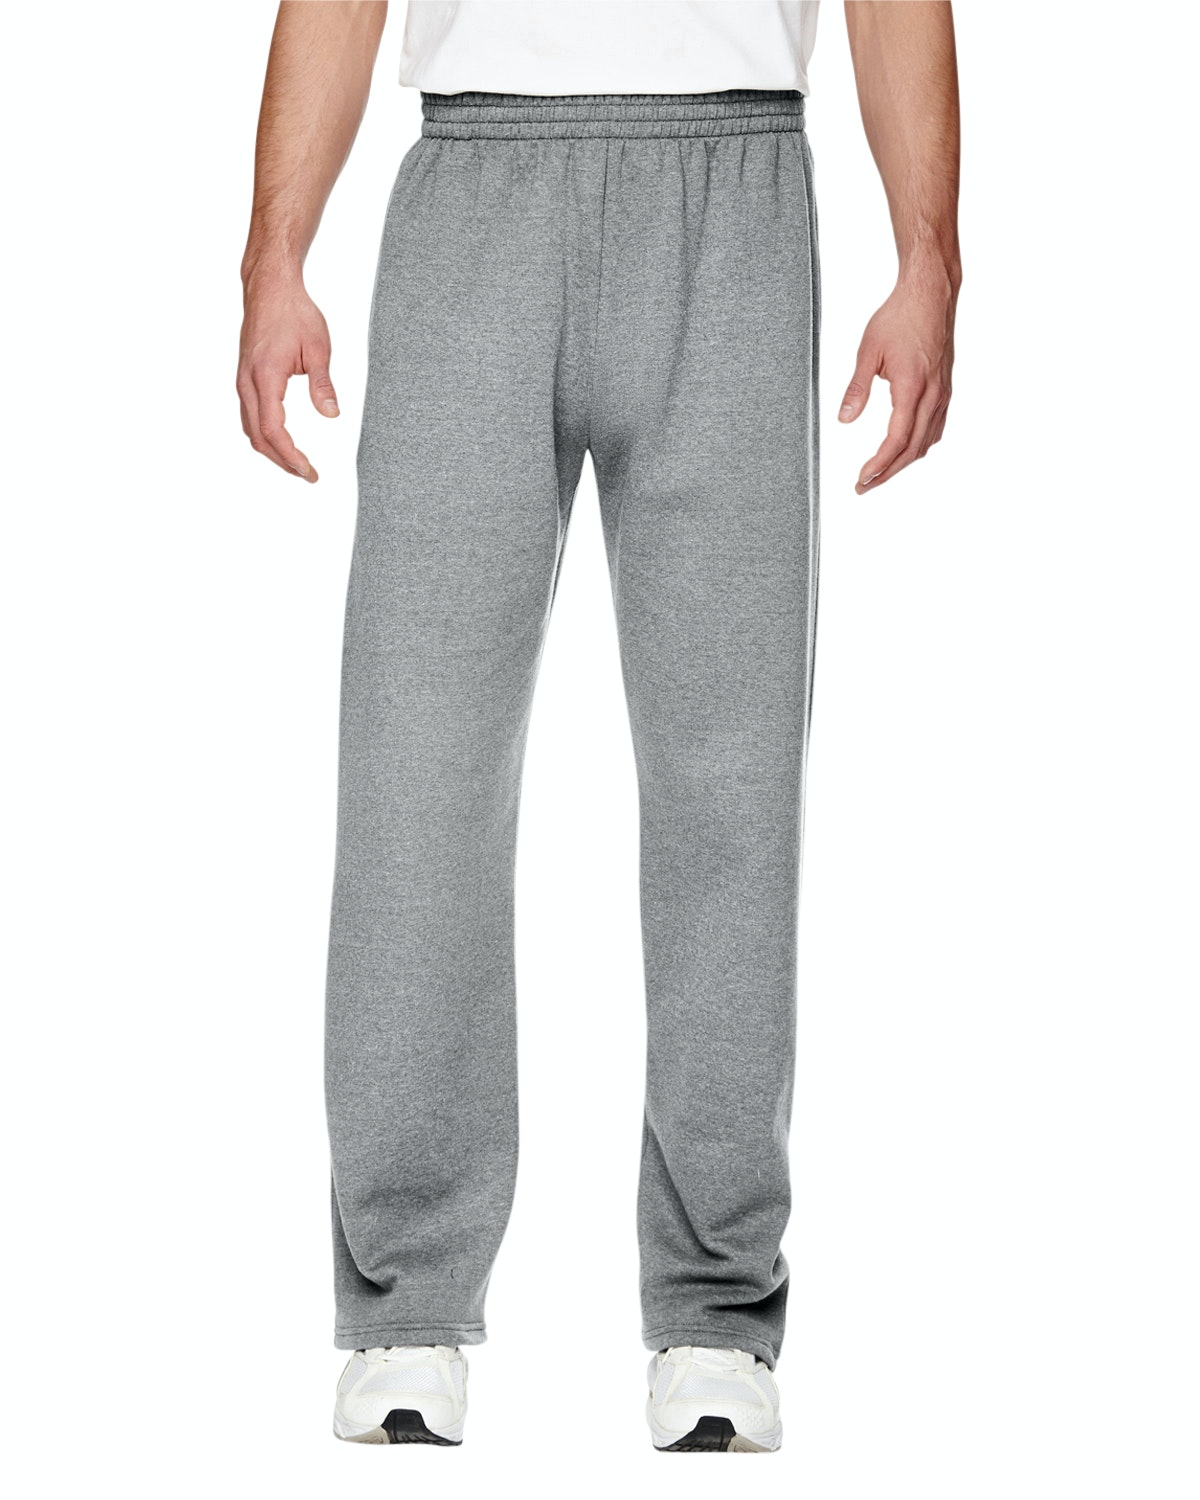 Fruit of the Loom SF74R Athletic Heather